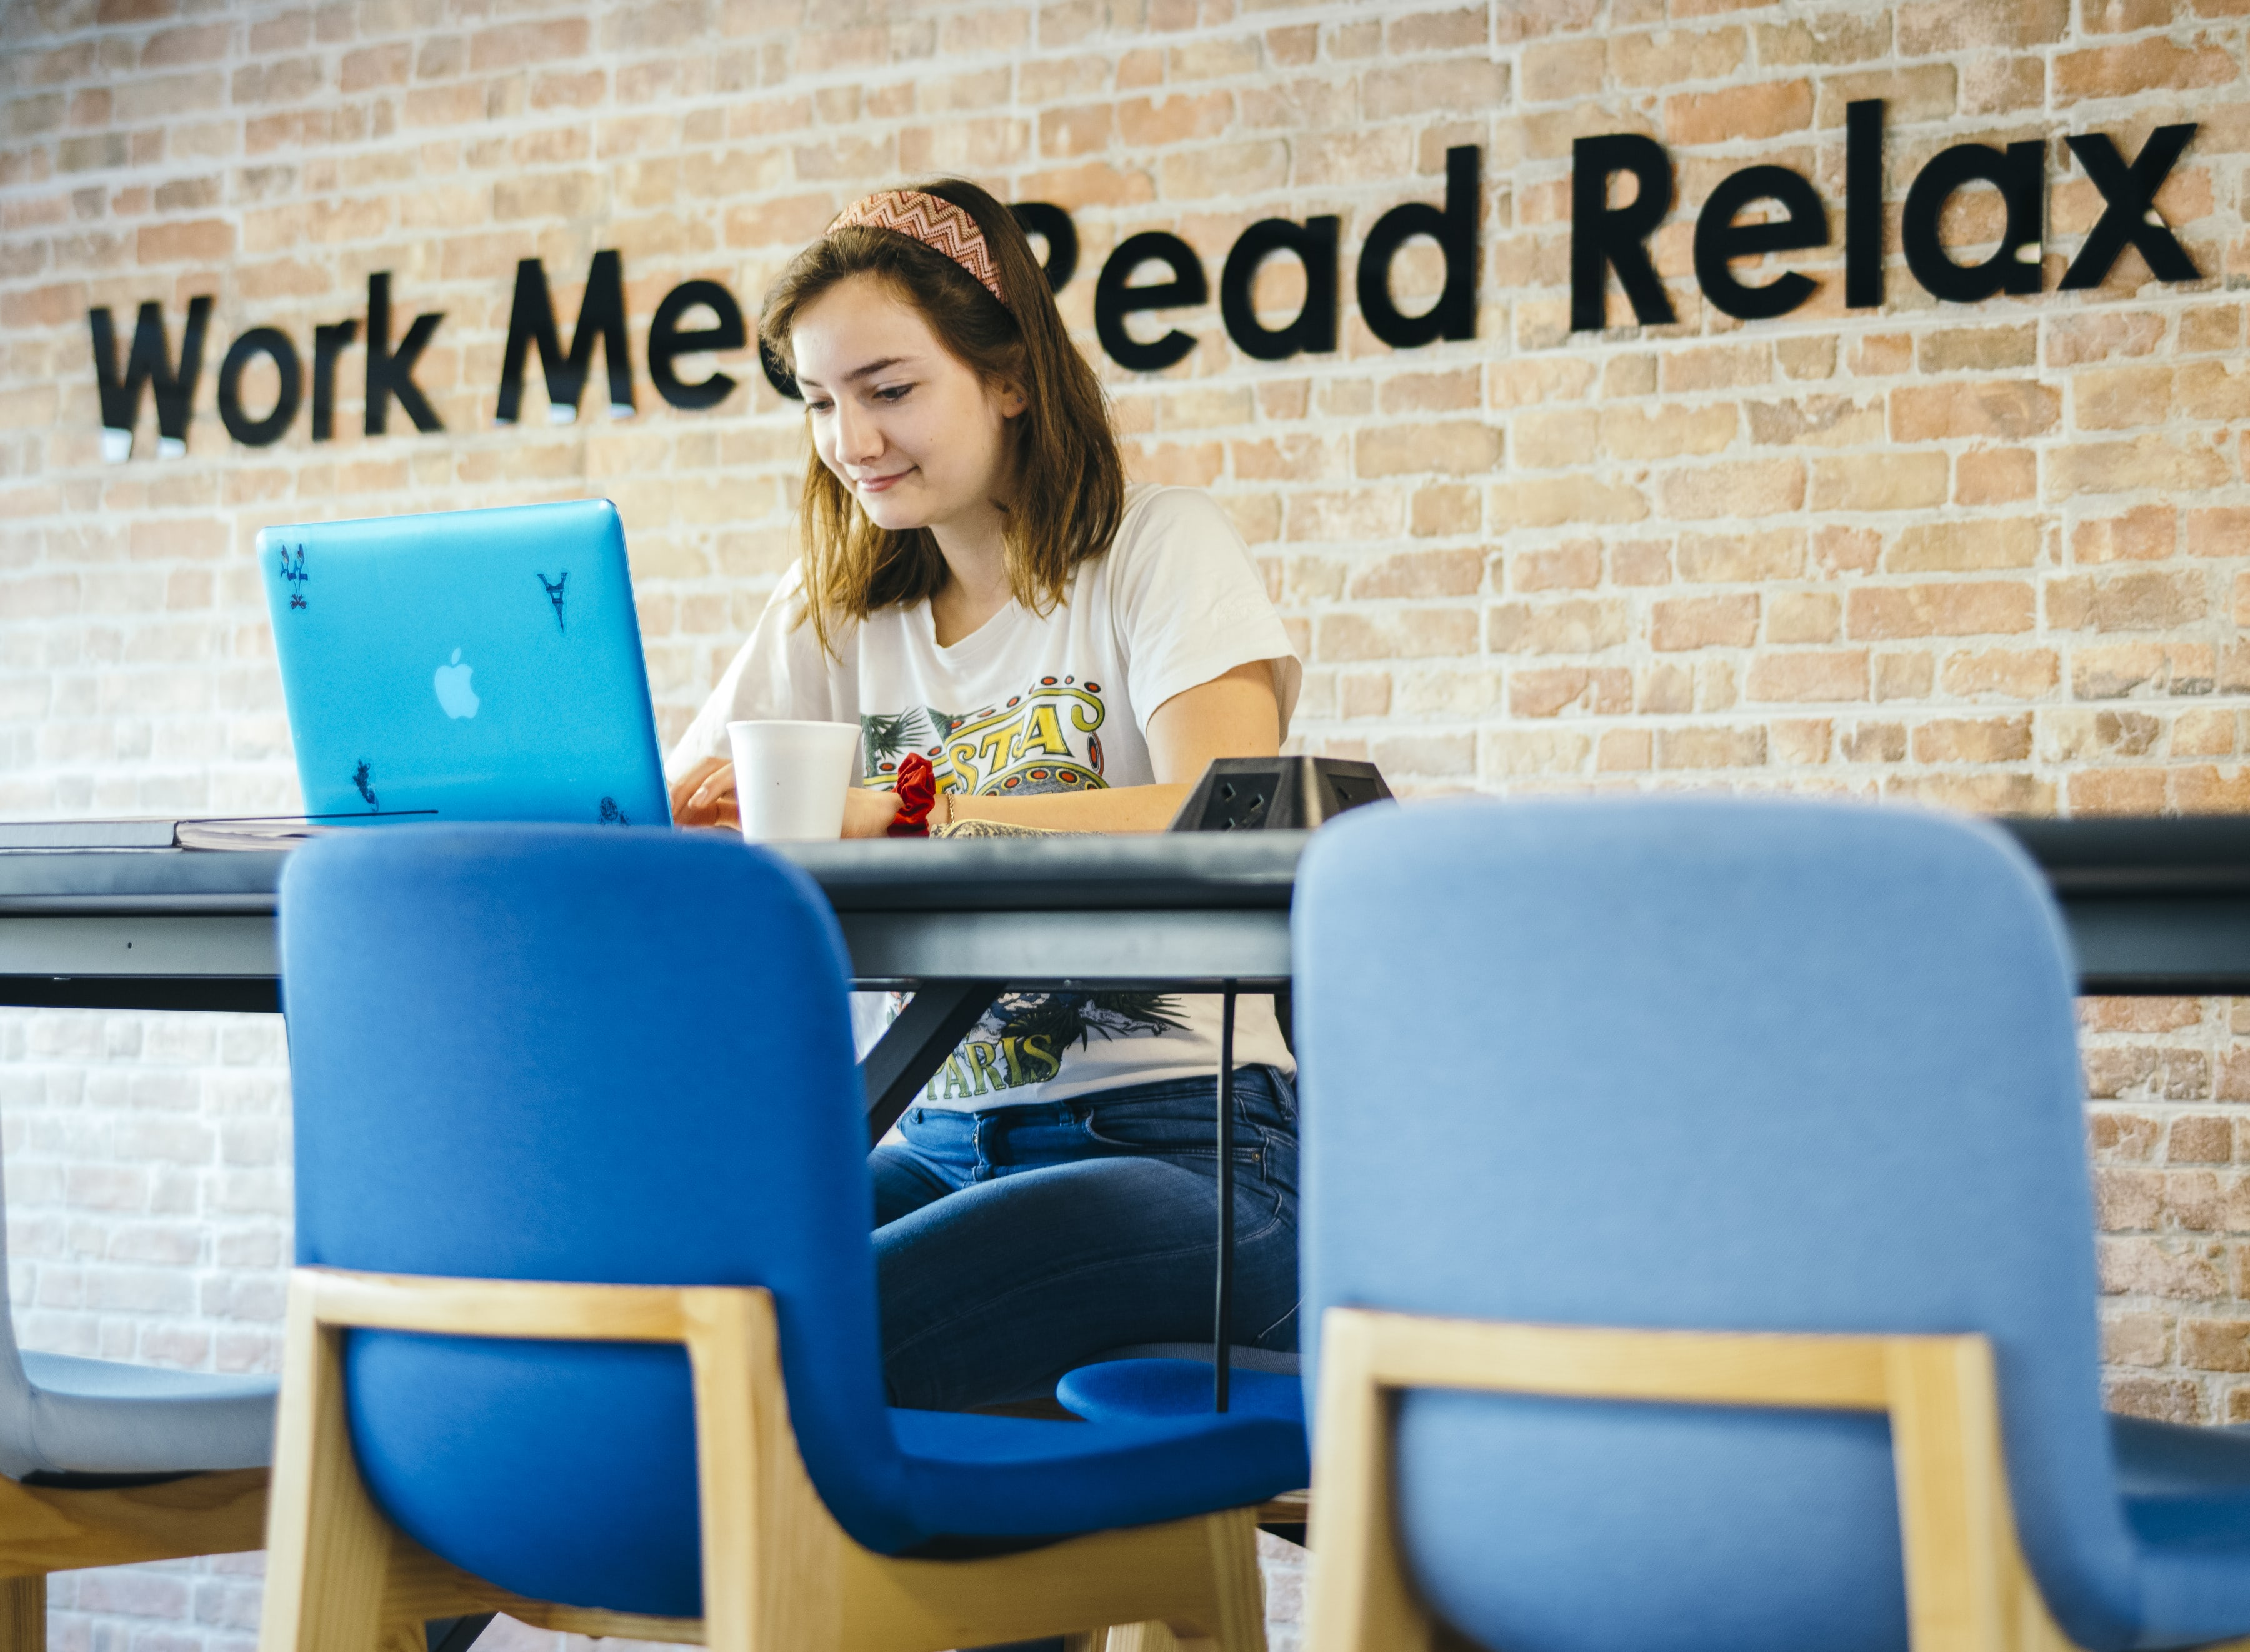 Image of a person working in a co-working environment